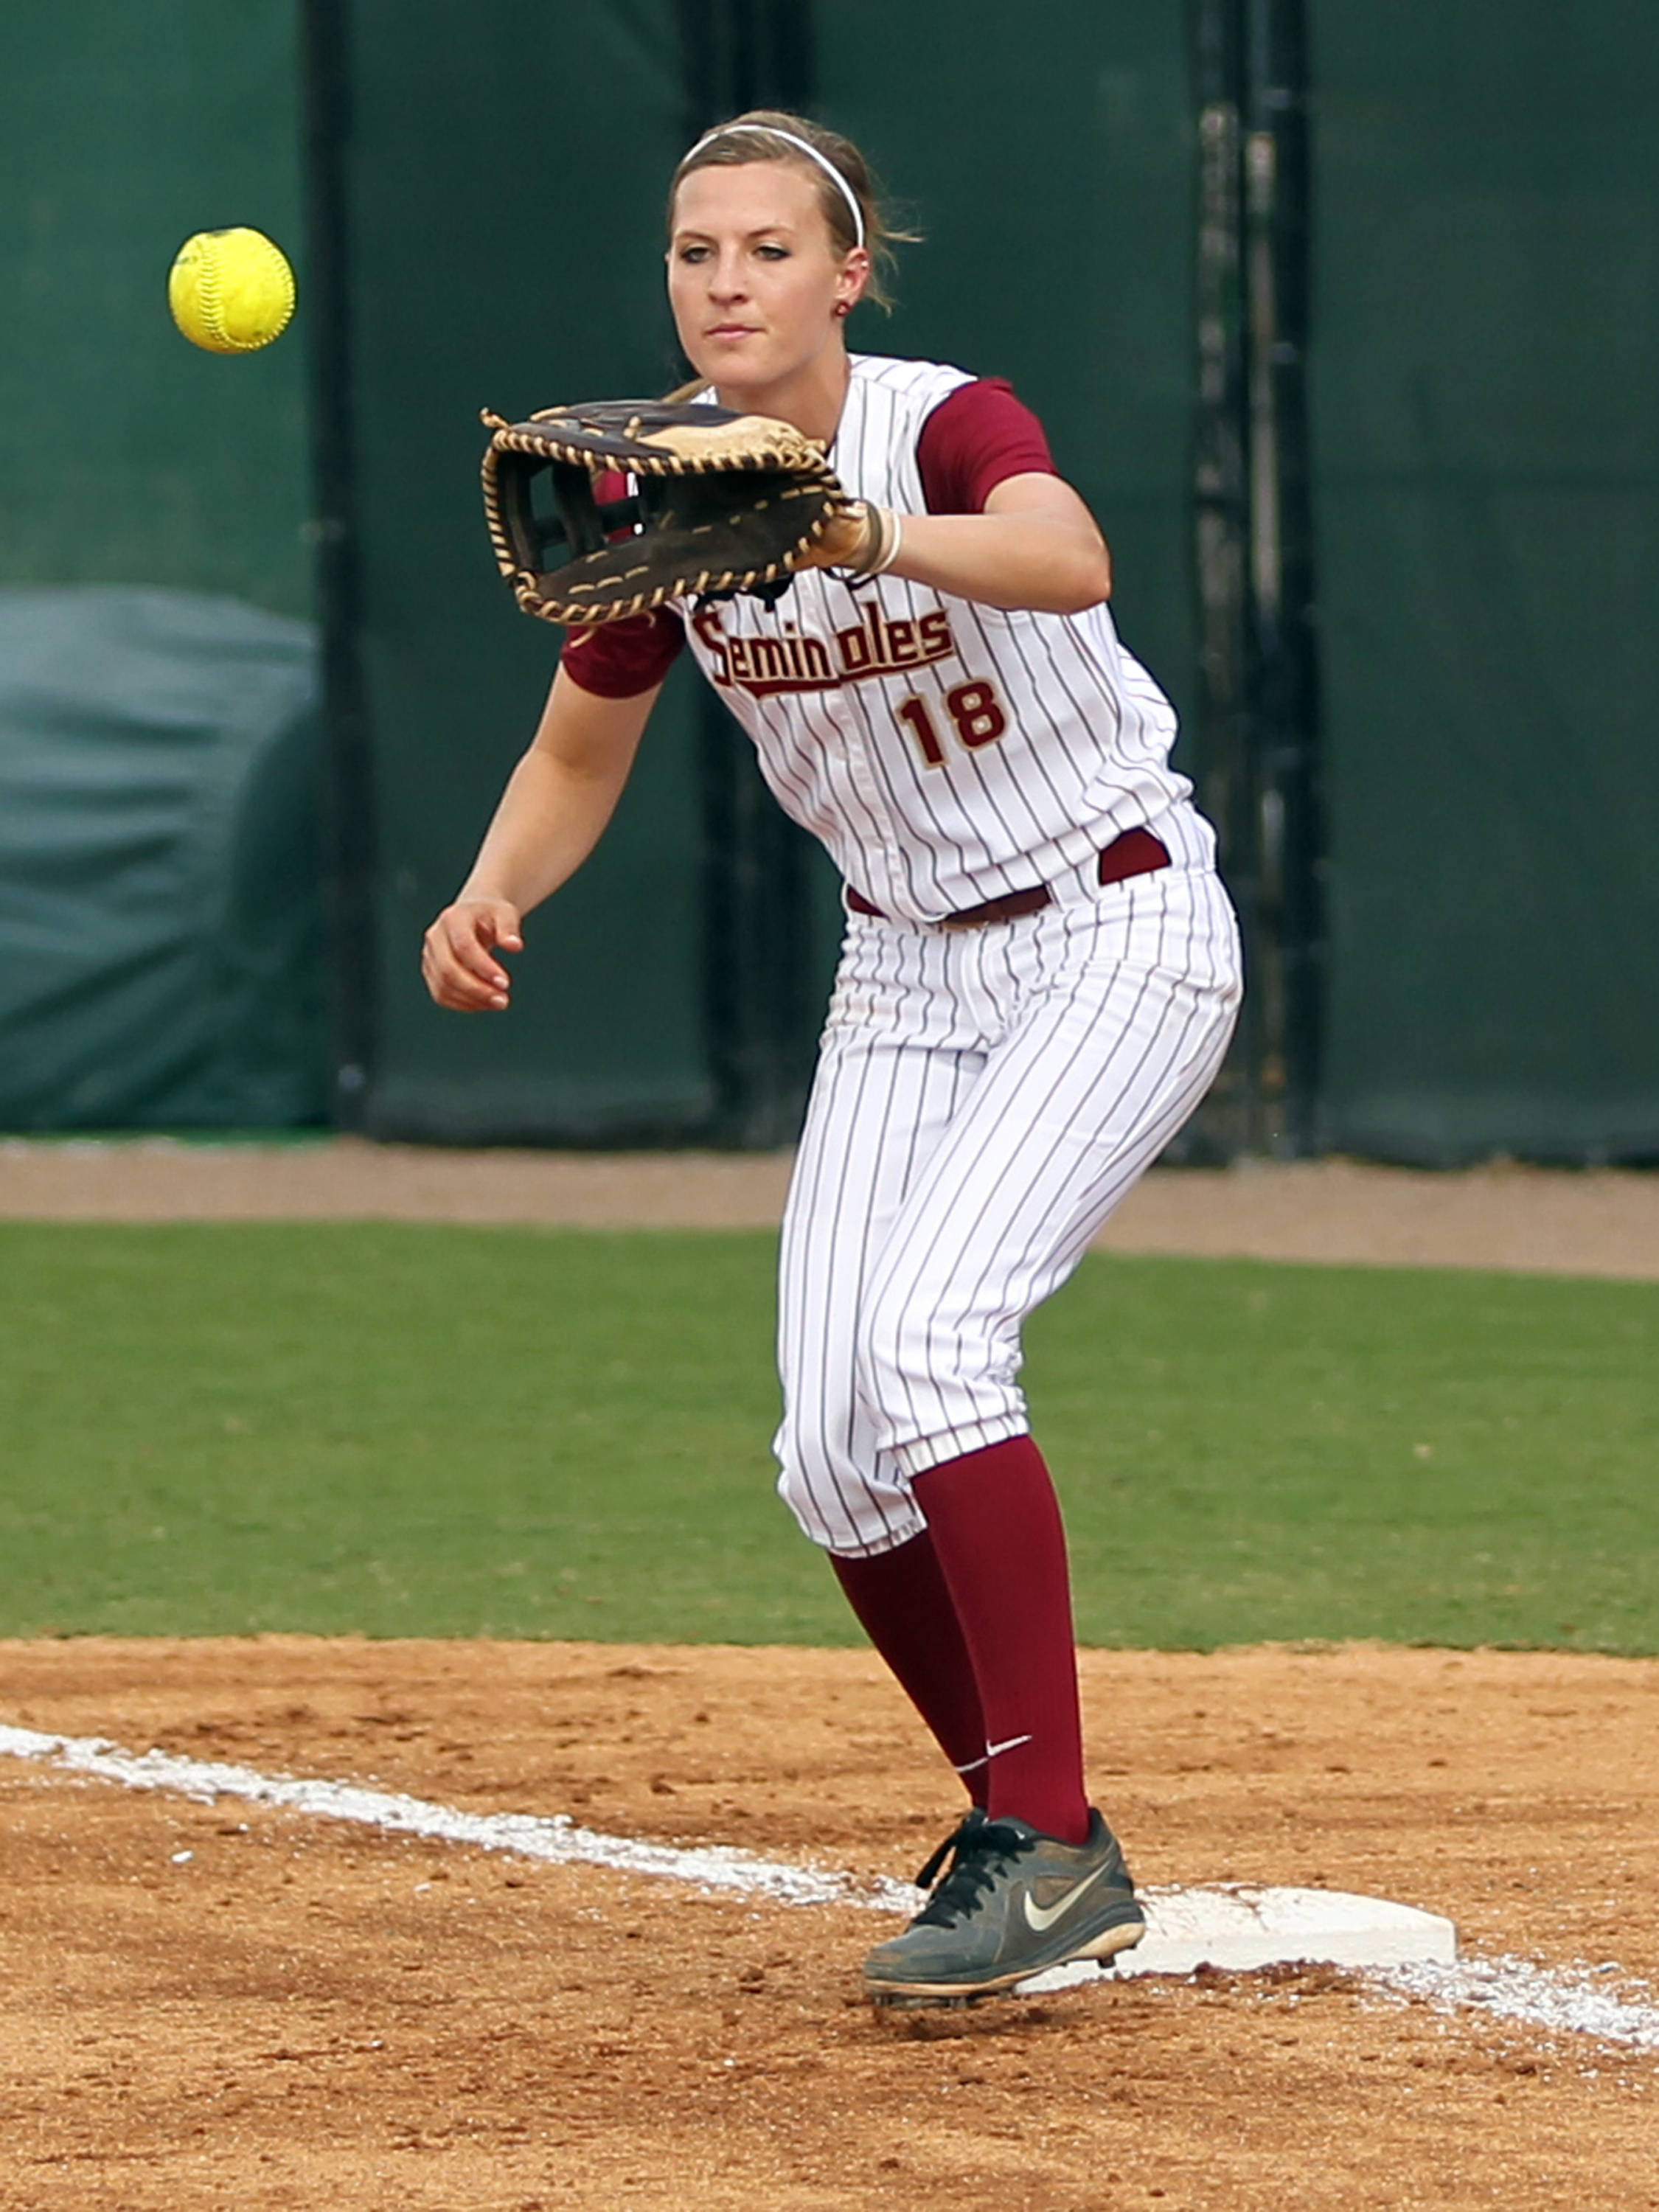 Victoria East, FSU VS BC, ACC Championship Quarterfinals, Tallahassee, FL,  05/09/13 . (Photo by Steve Musco)